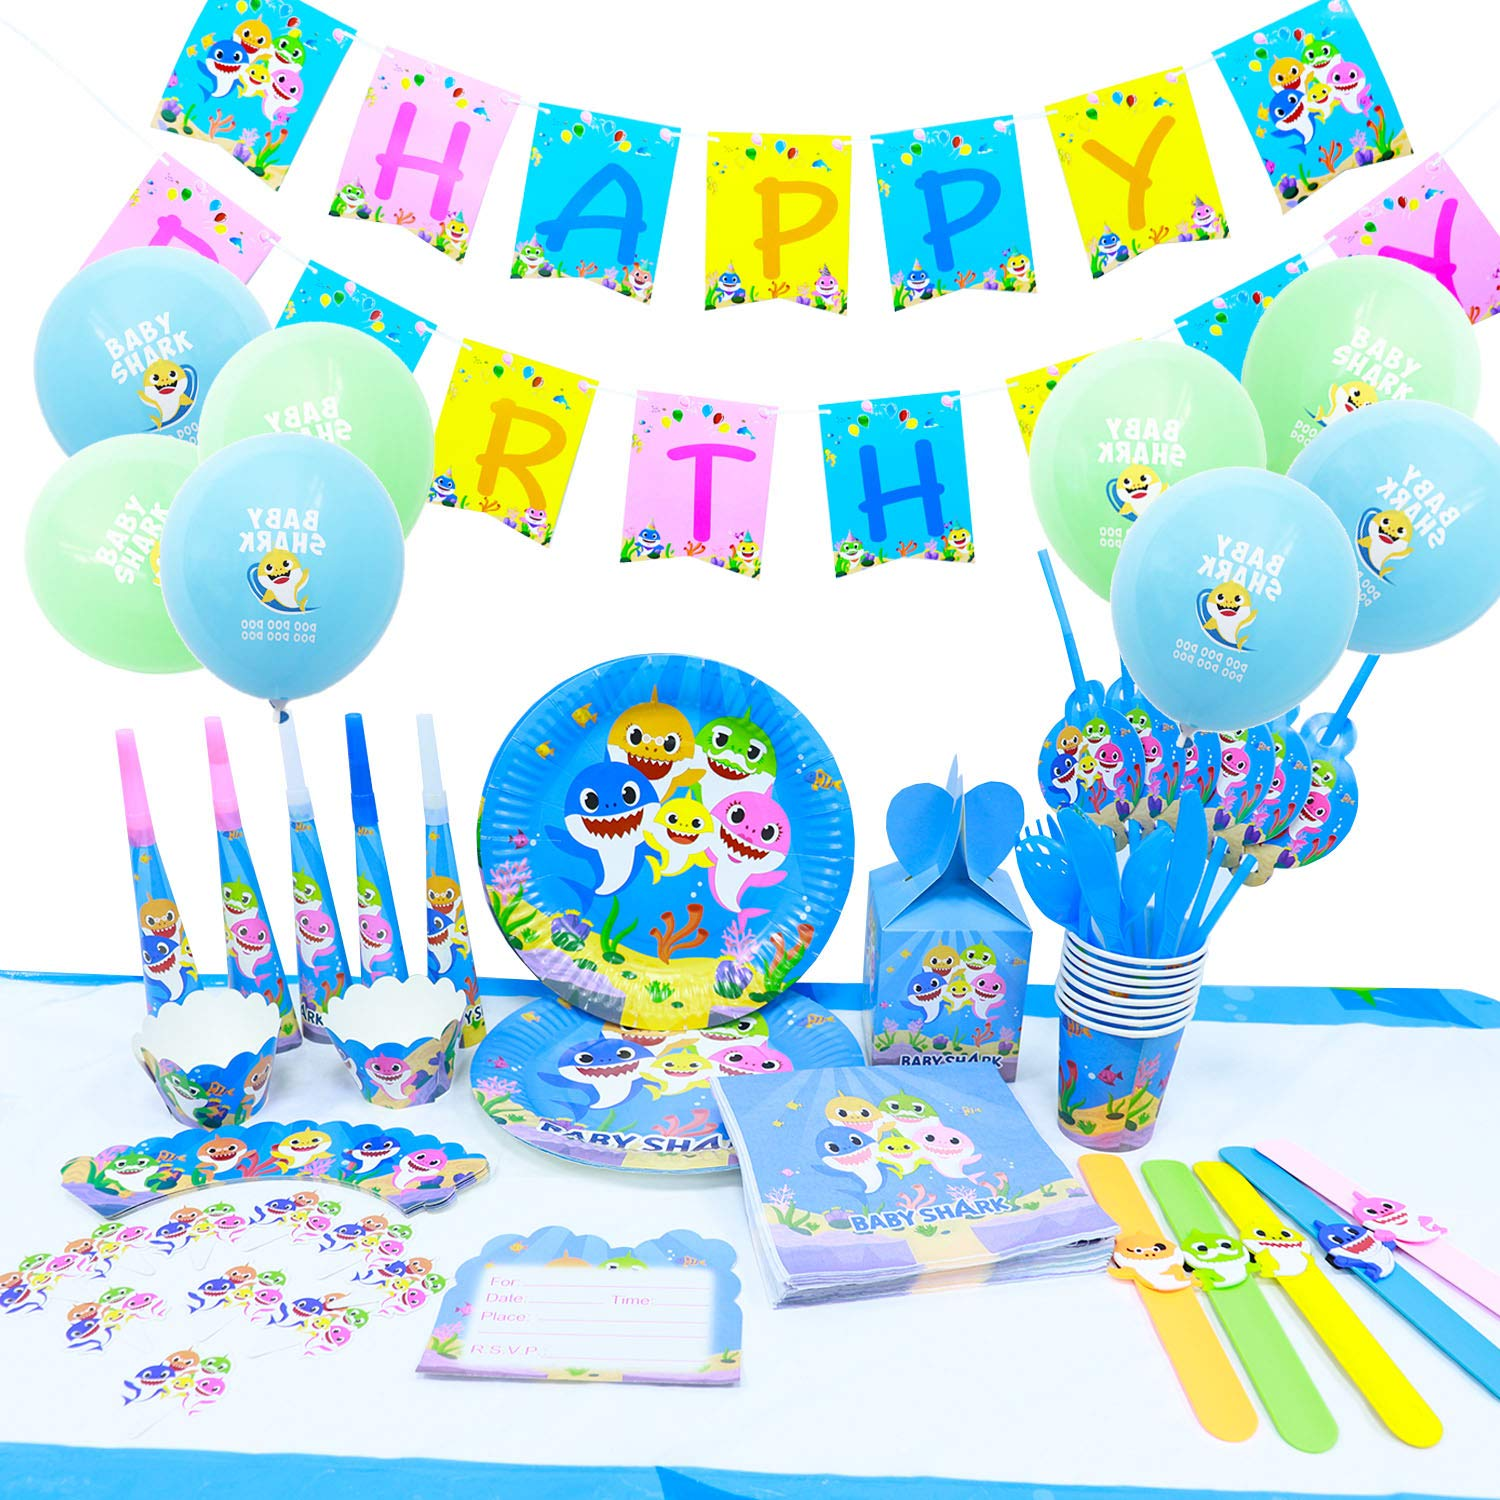 Baby Shark Party Supplies - 139 Pcs Kids Birthday Decorations Includes Disposable Tableware Kit Trumpet Candy Boxes Cupcake Toppers and Wrappers Baby Shark Bracelets Invitation Cards Balloon and Banner-Serves 10 Guest